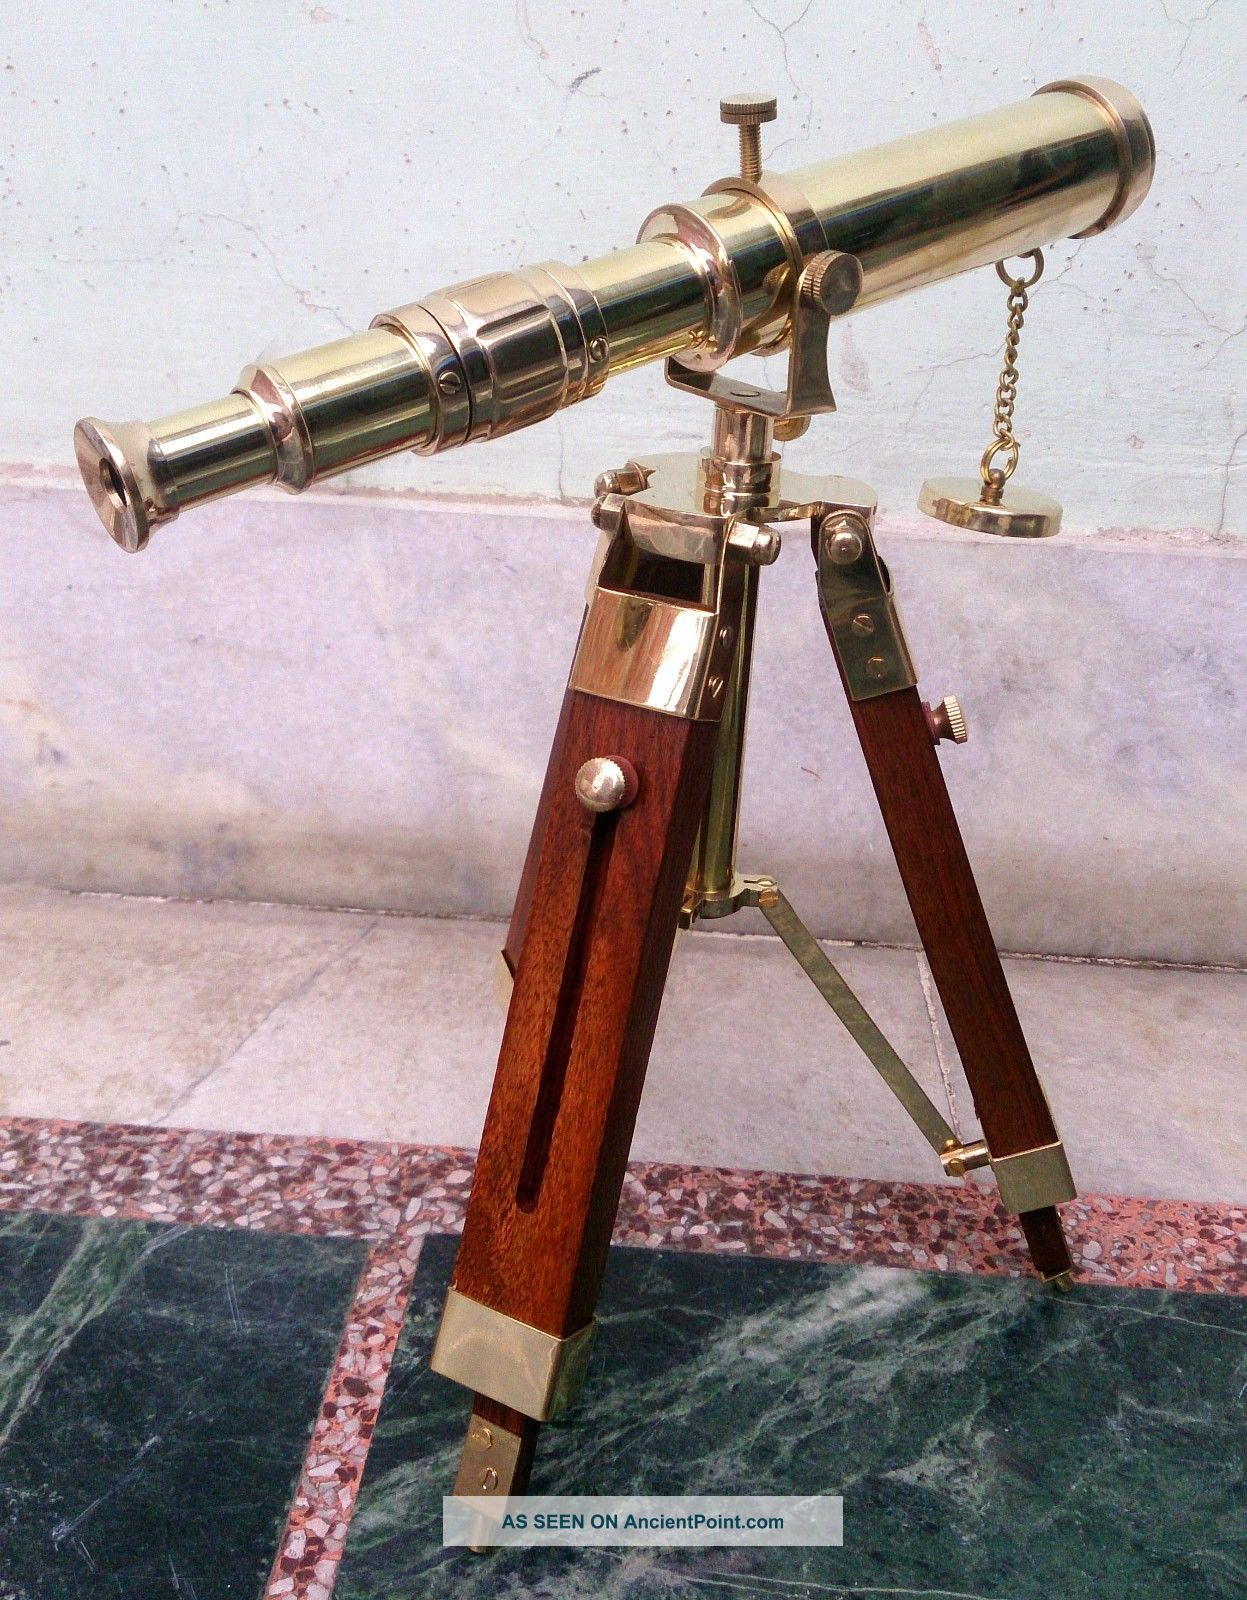 Maritime Vintage Marine Scope Spyglass Brass Telescope With Stand Nautical Decor Telescopes photo